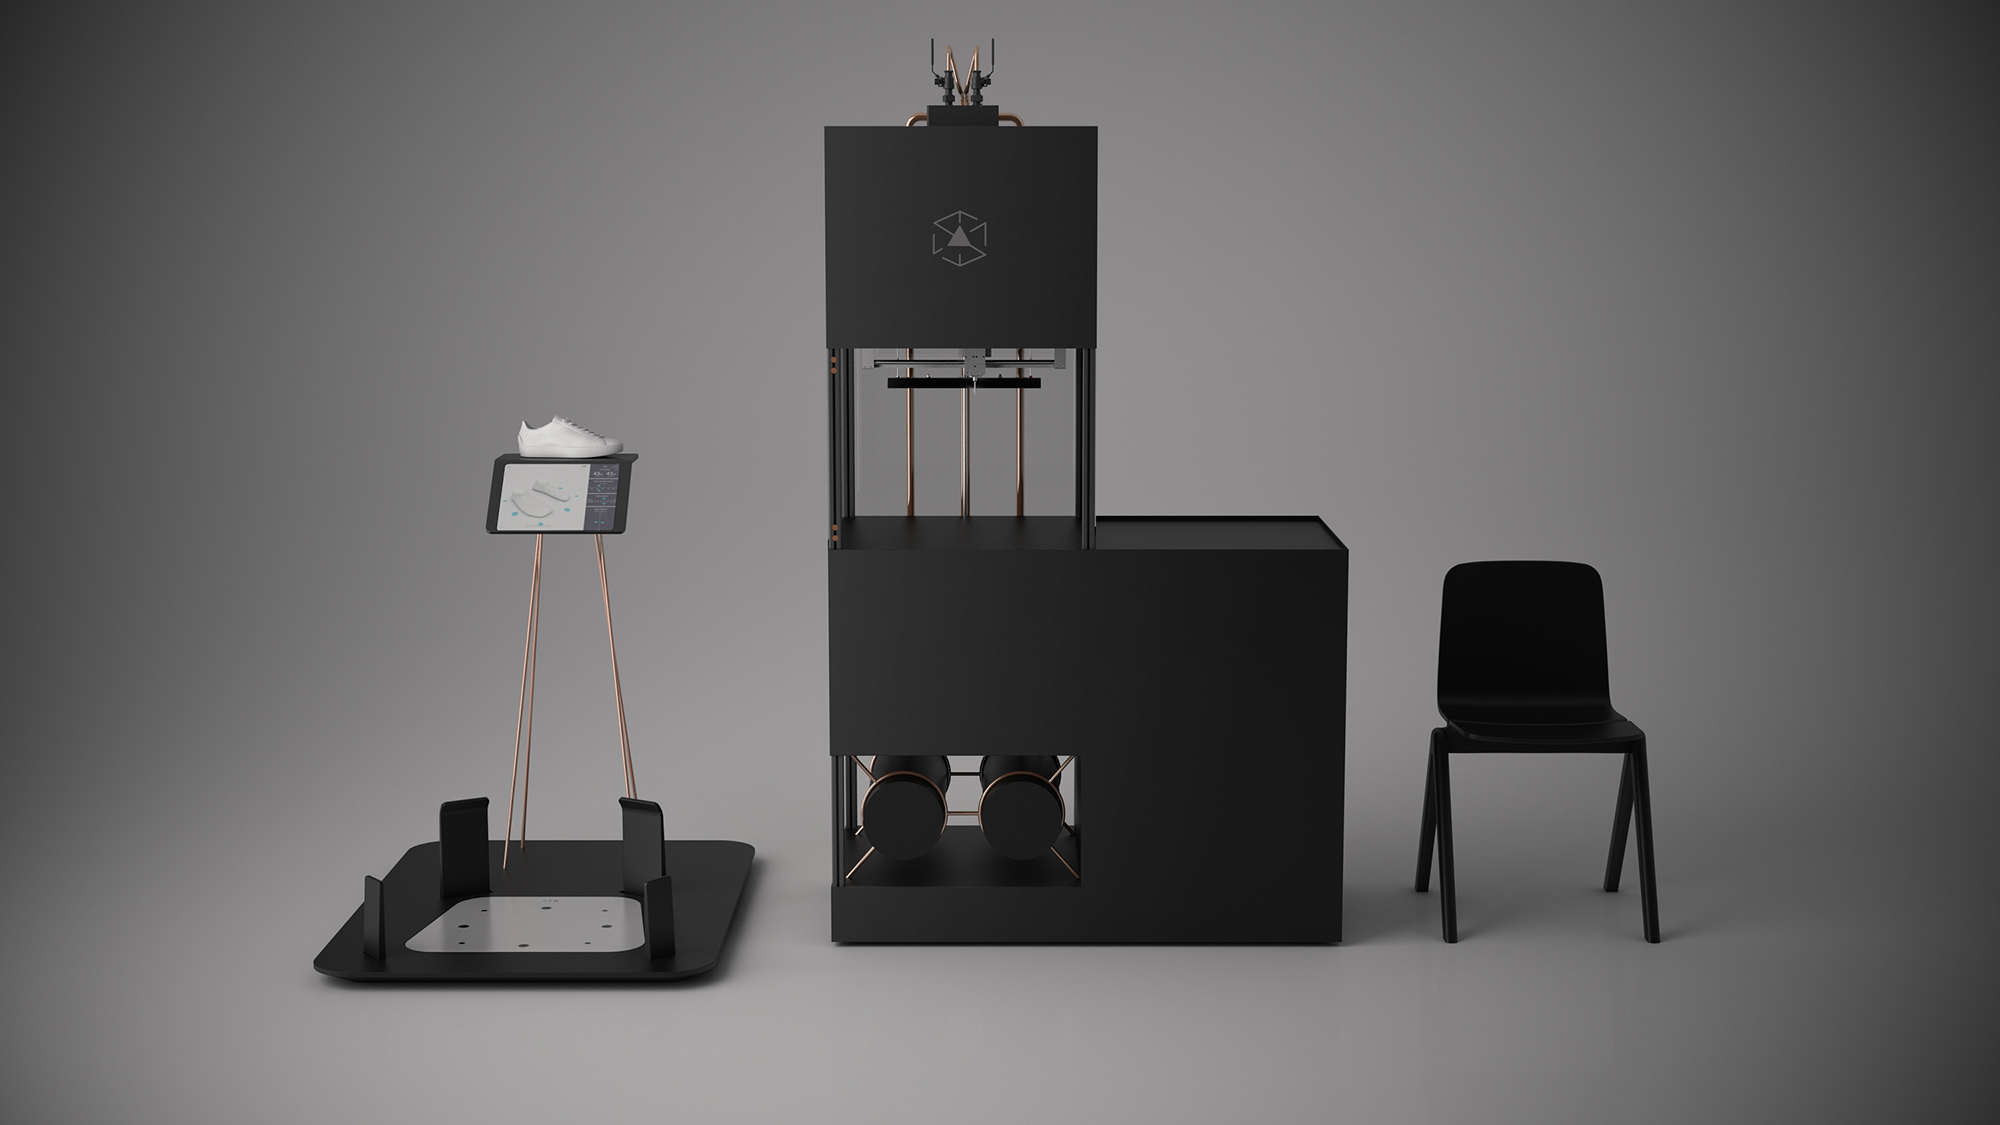 A render of the 3D scanning station and German RepRap modified 3D printer. Image via Ecco.